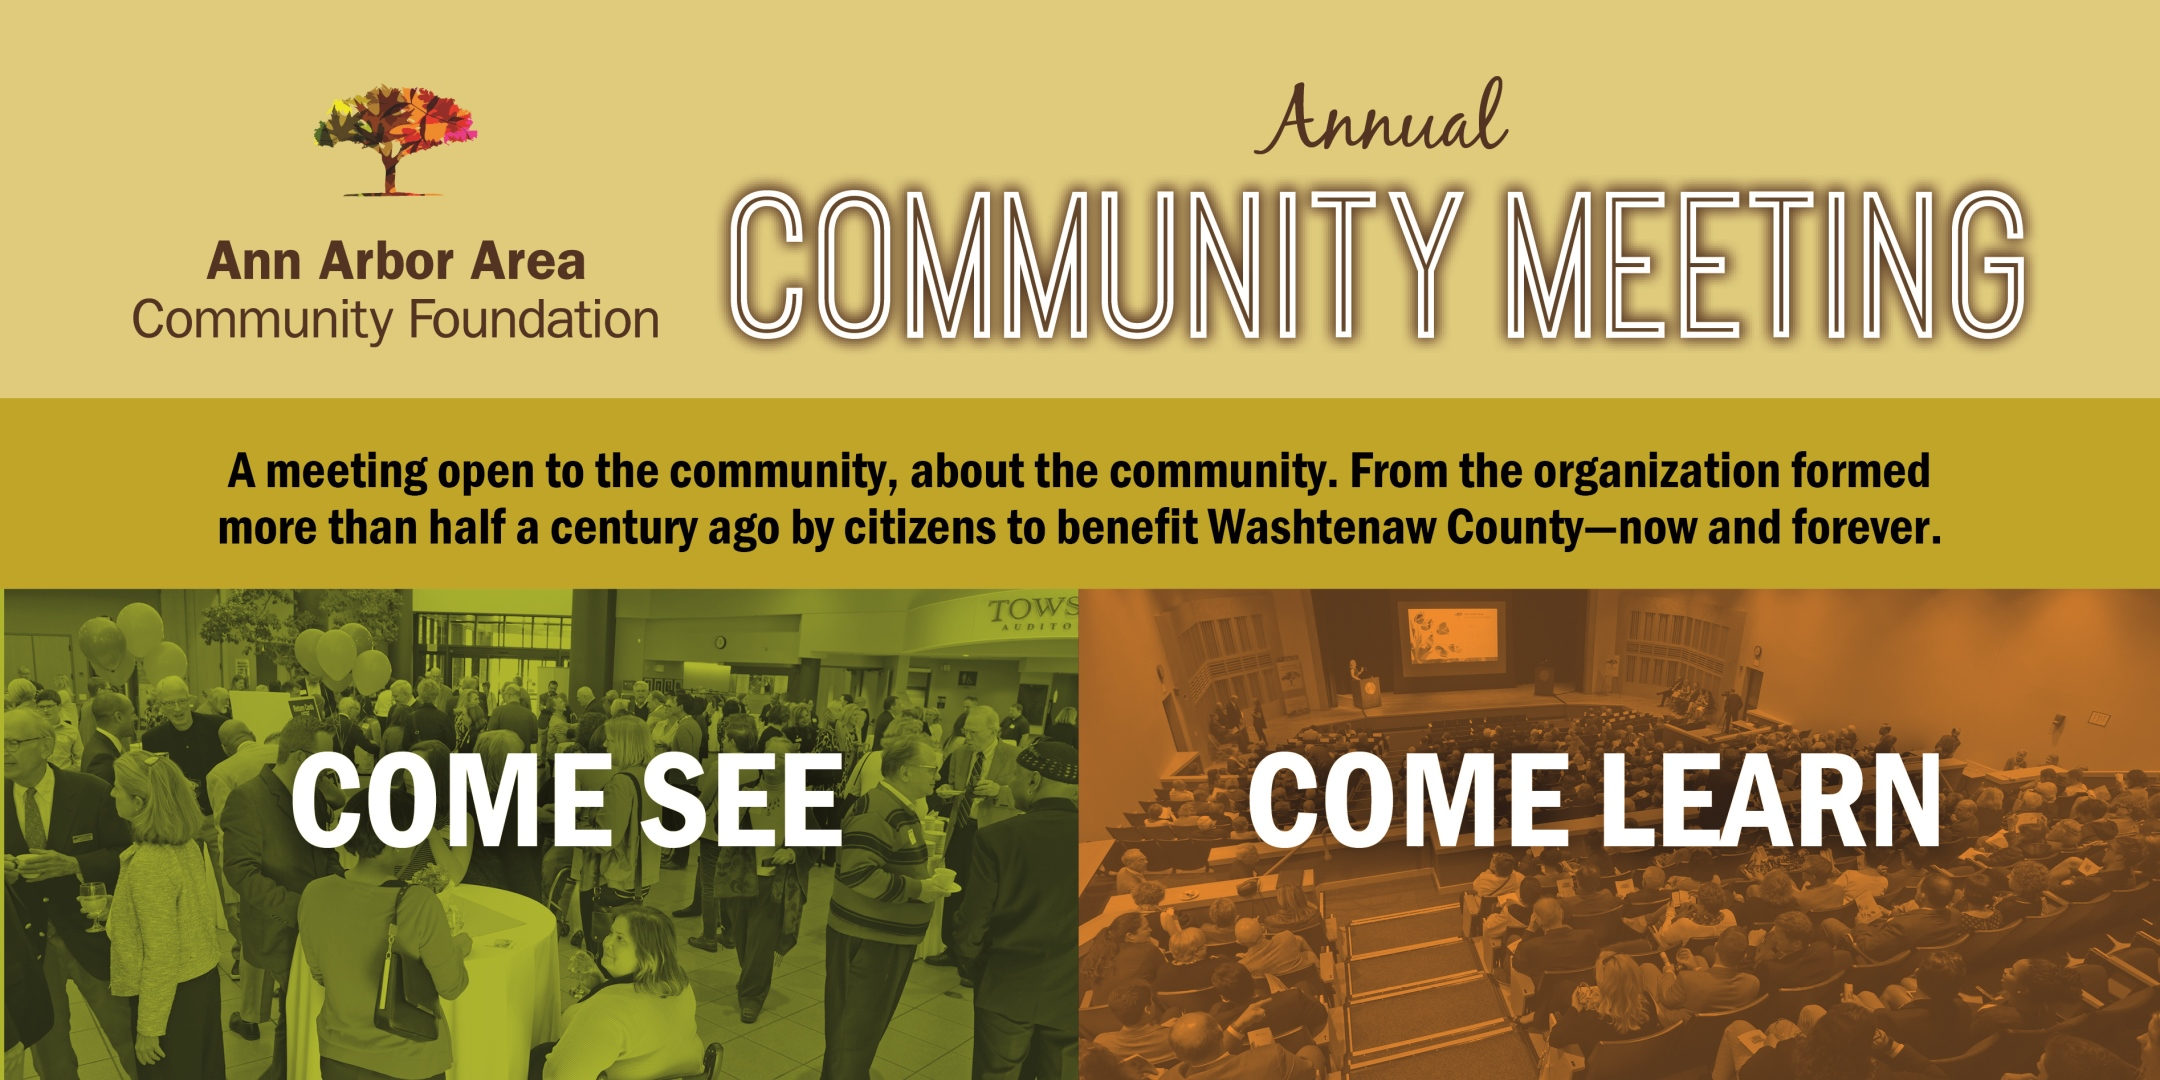 RSVP for AAACF's 2018 Annual Community Meeting